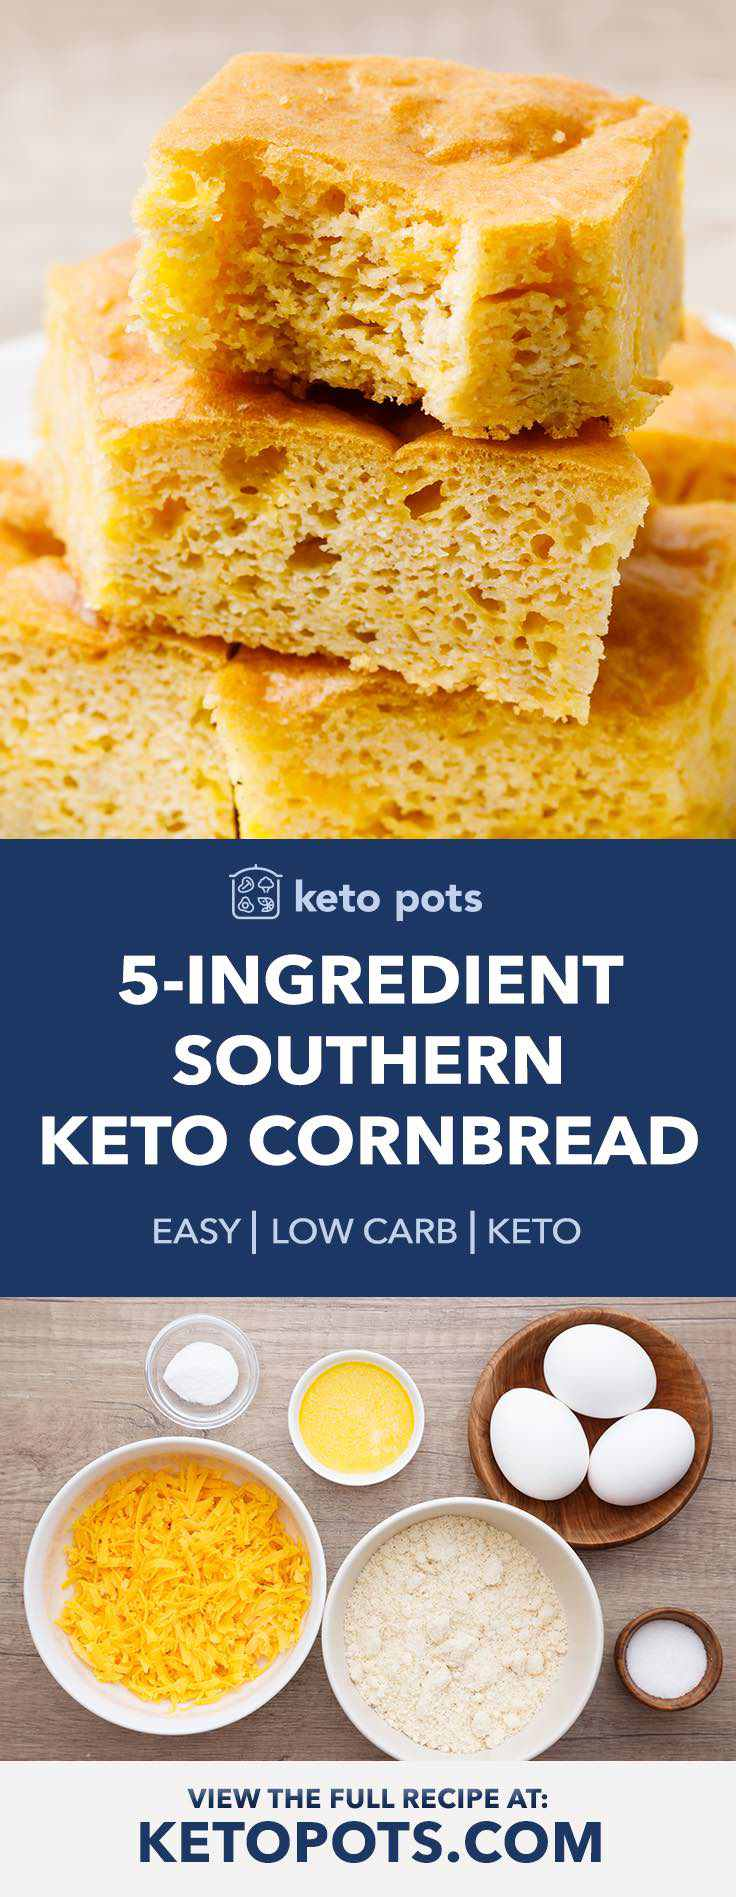 Easy southern keto cornbread with only 5 ingredients.